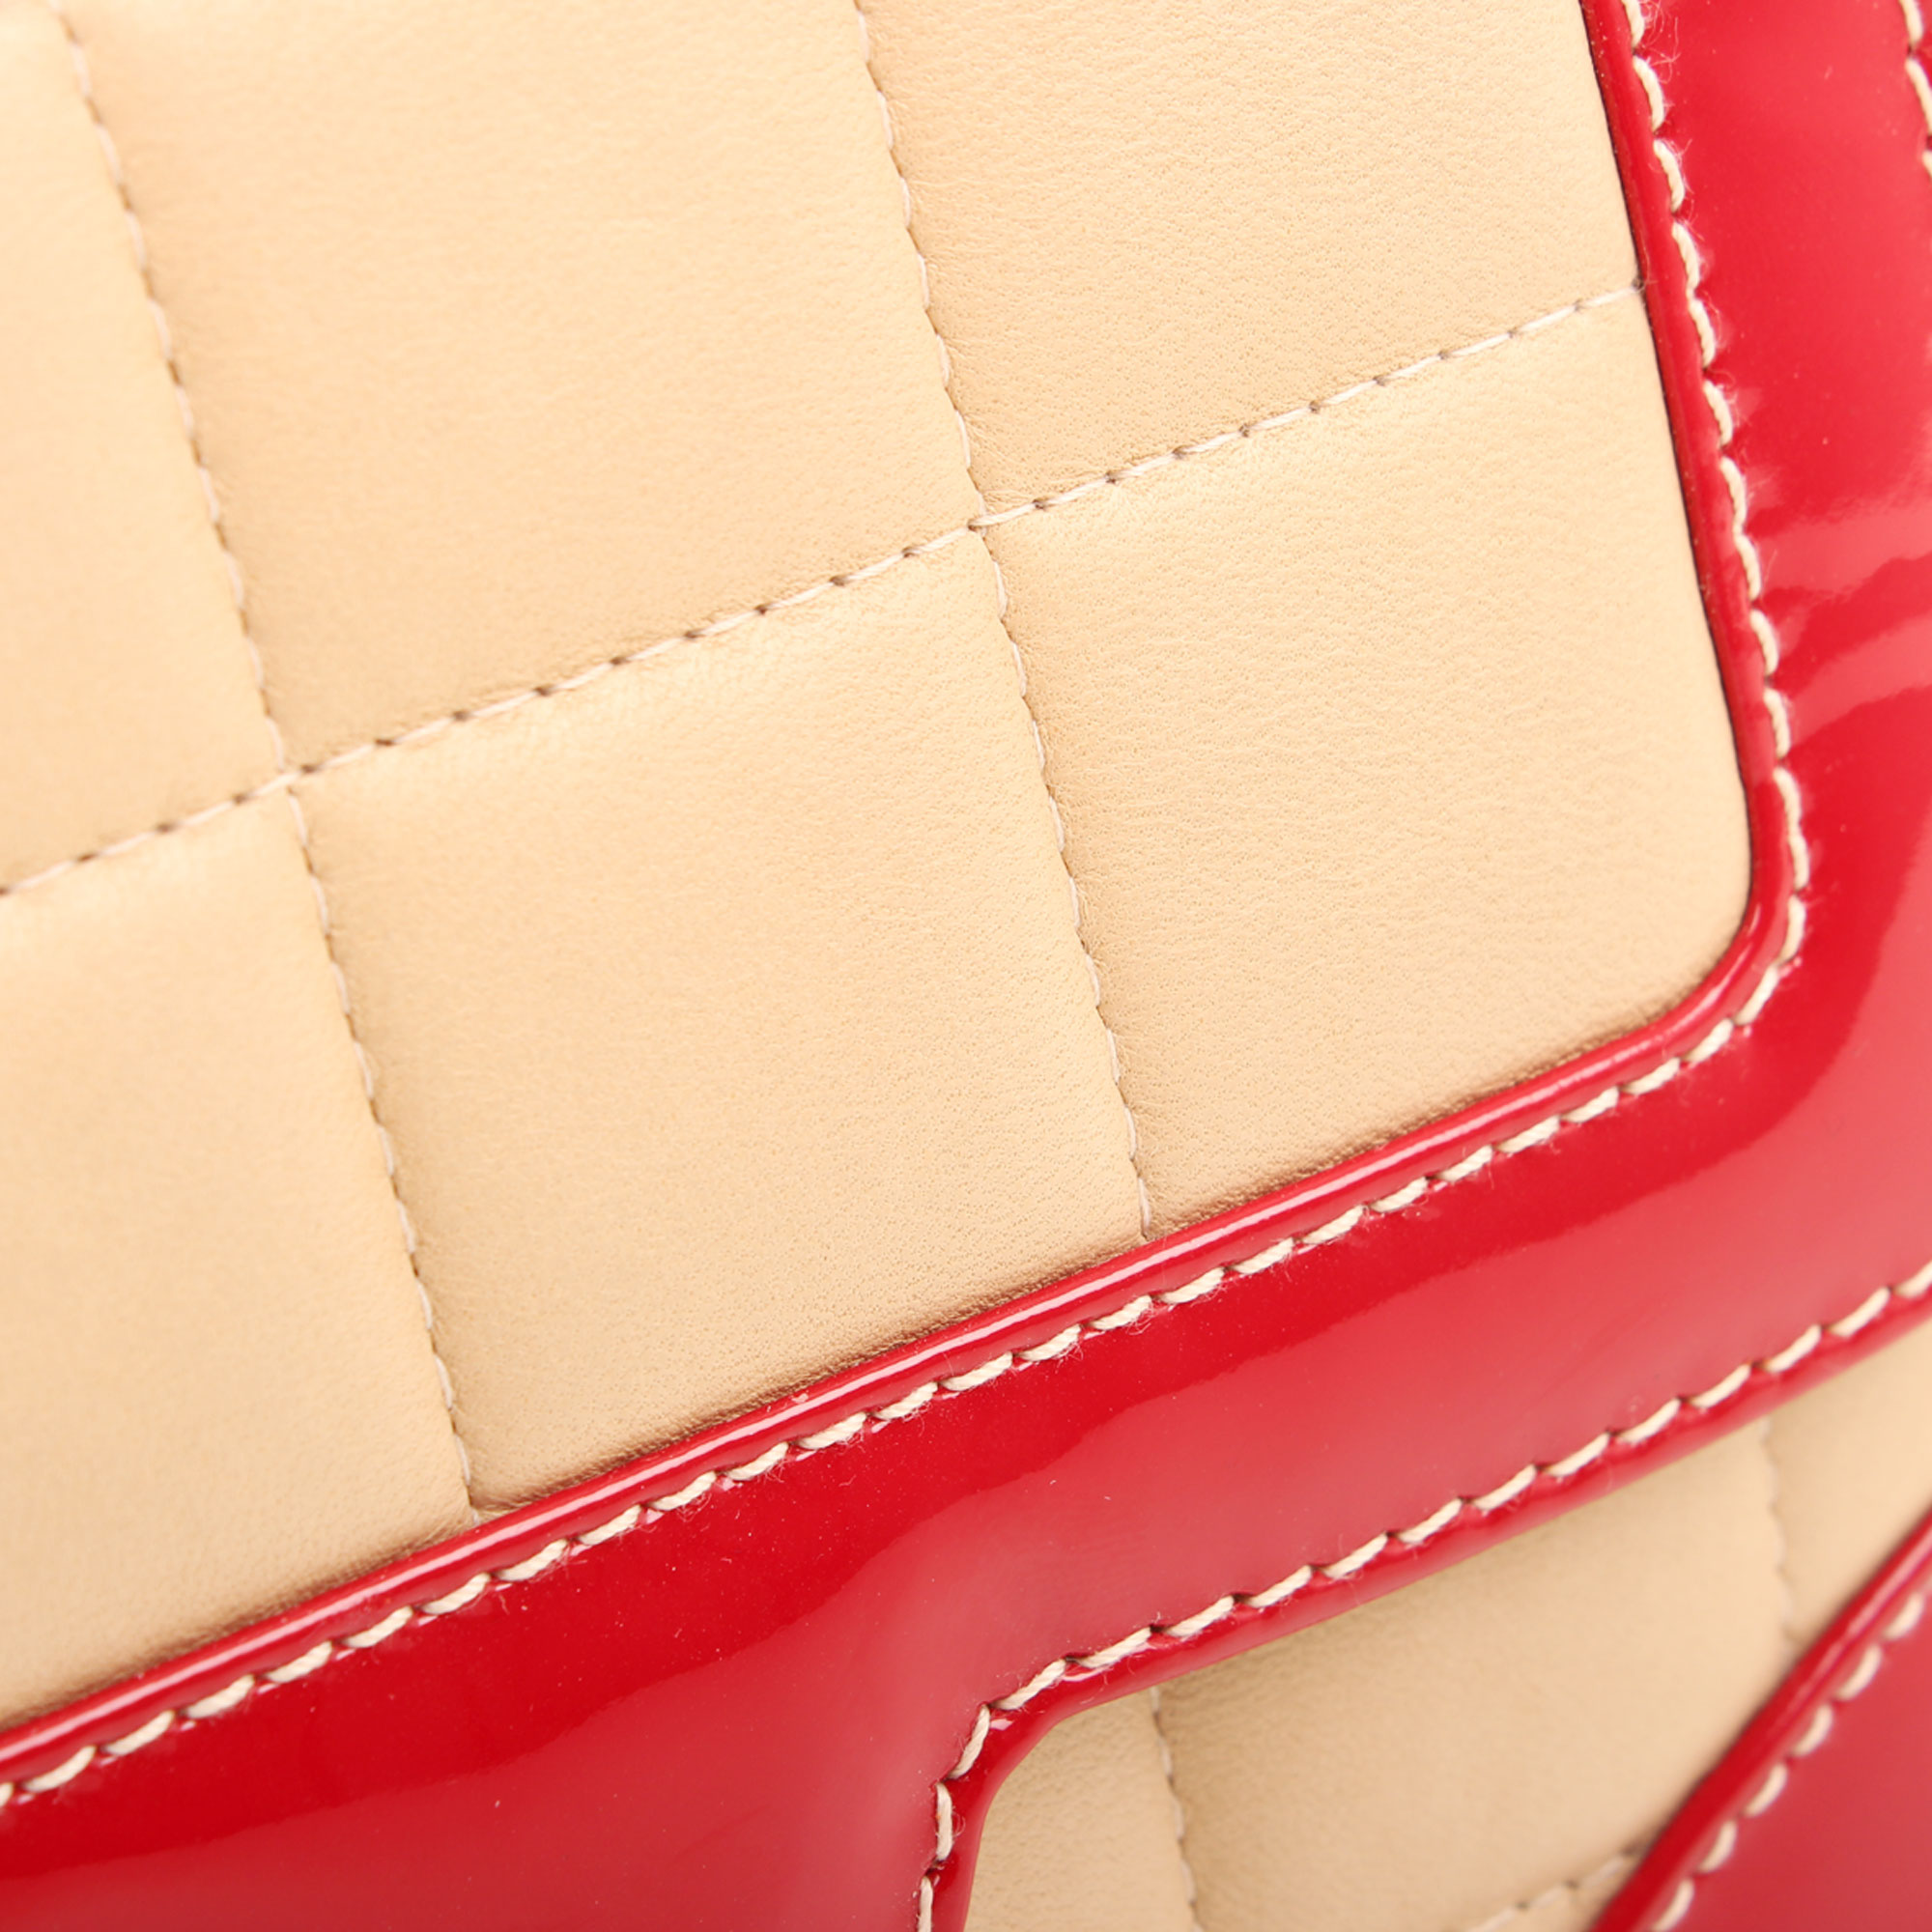 Leather detail image of chanel bicolor choco bar single flap